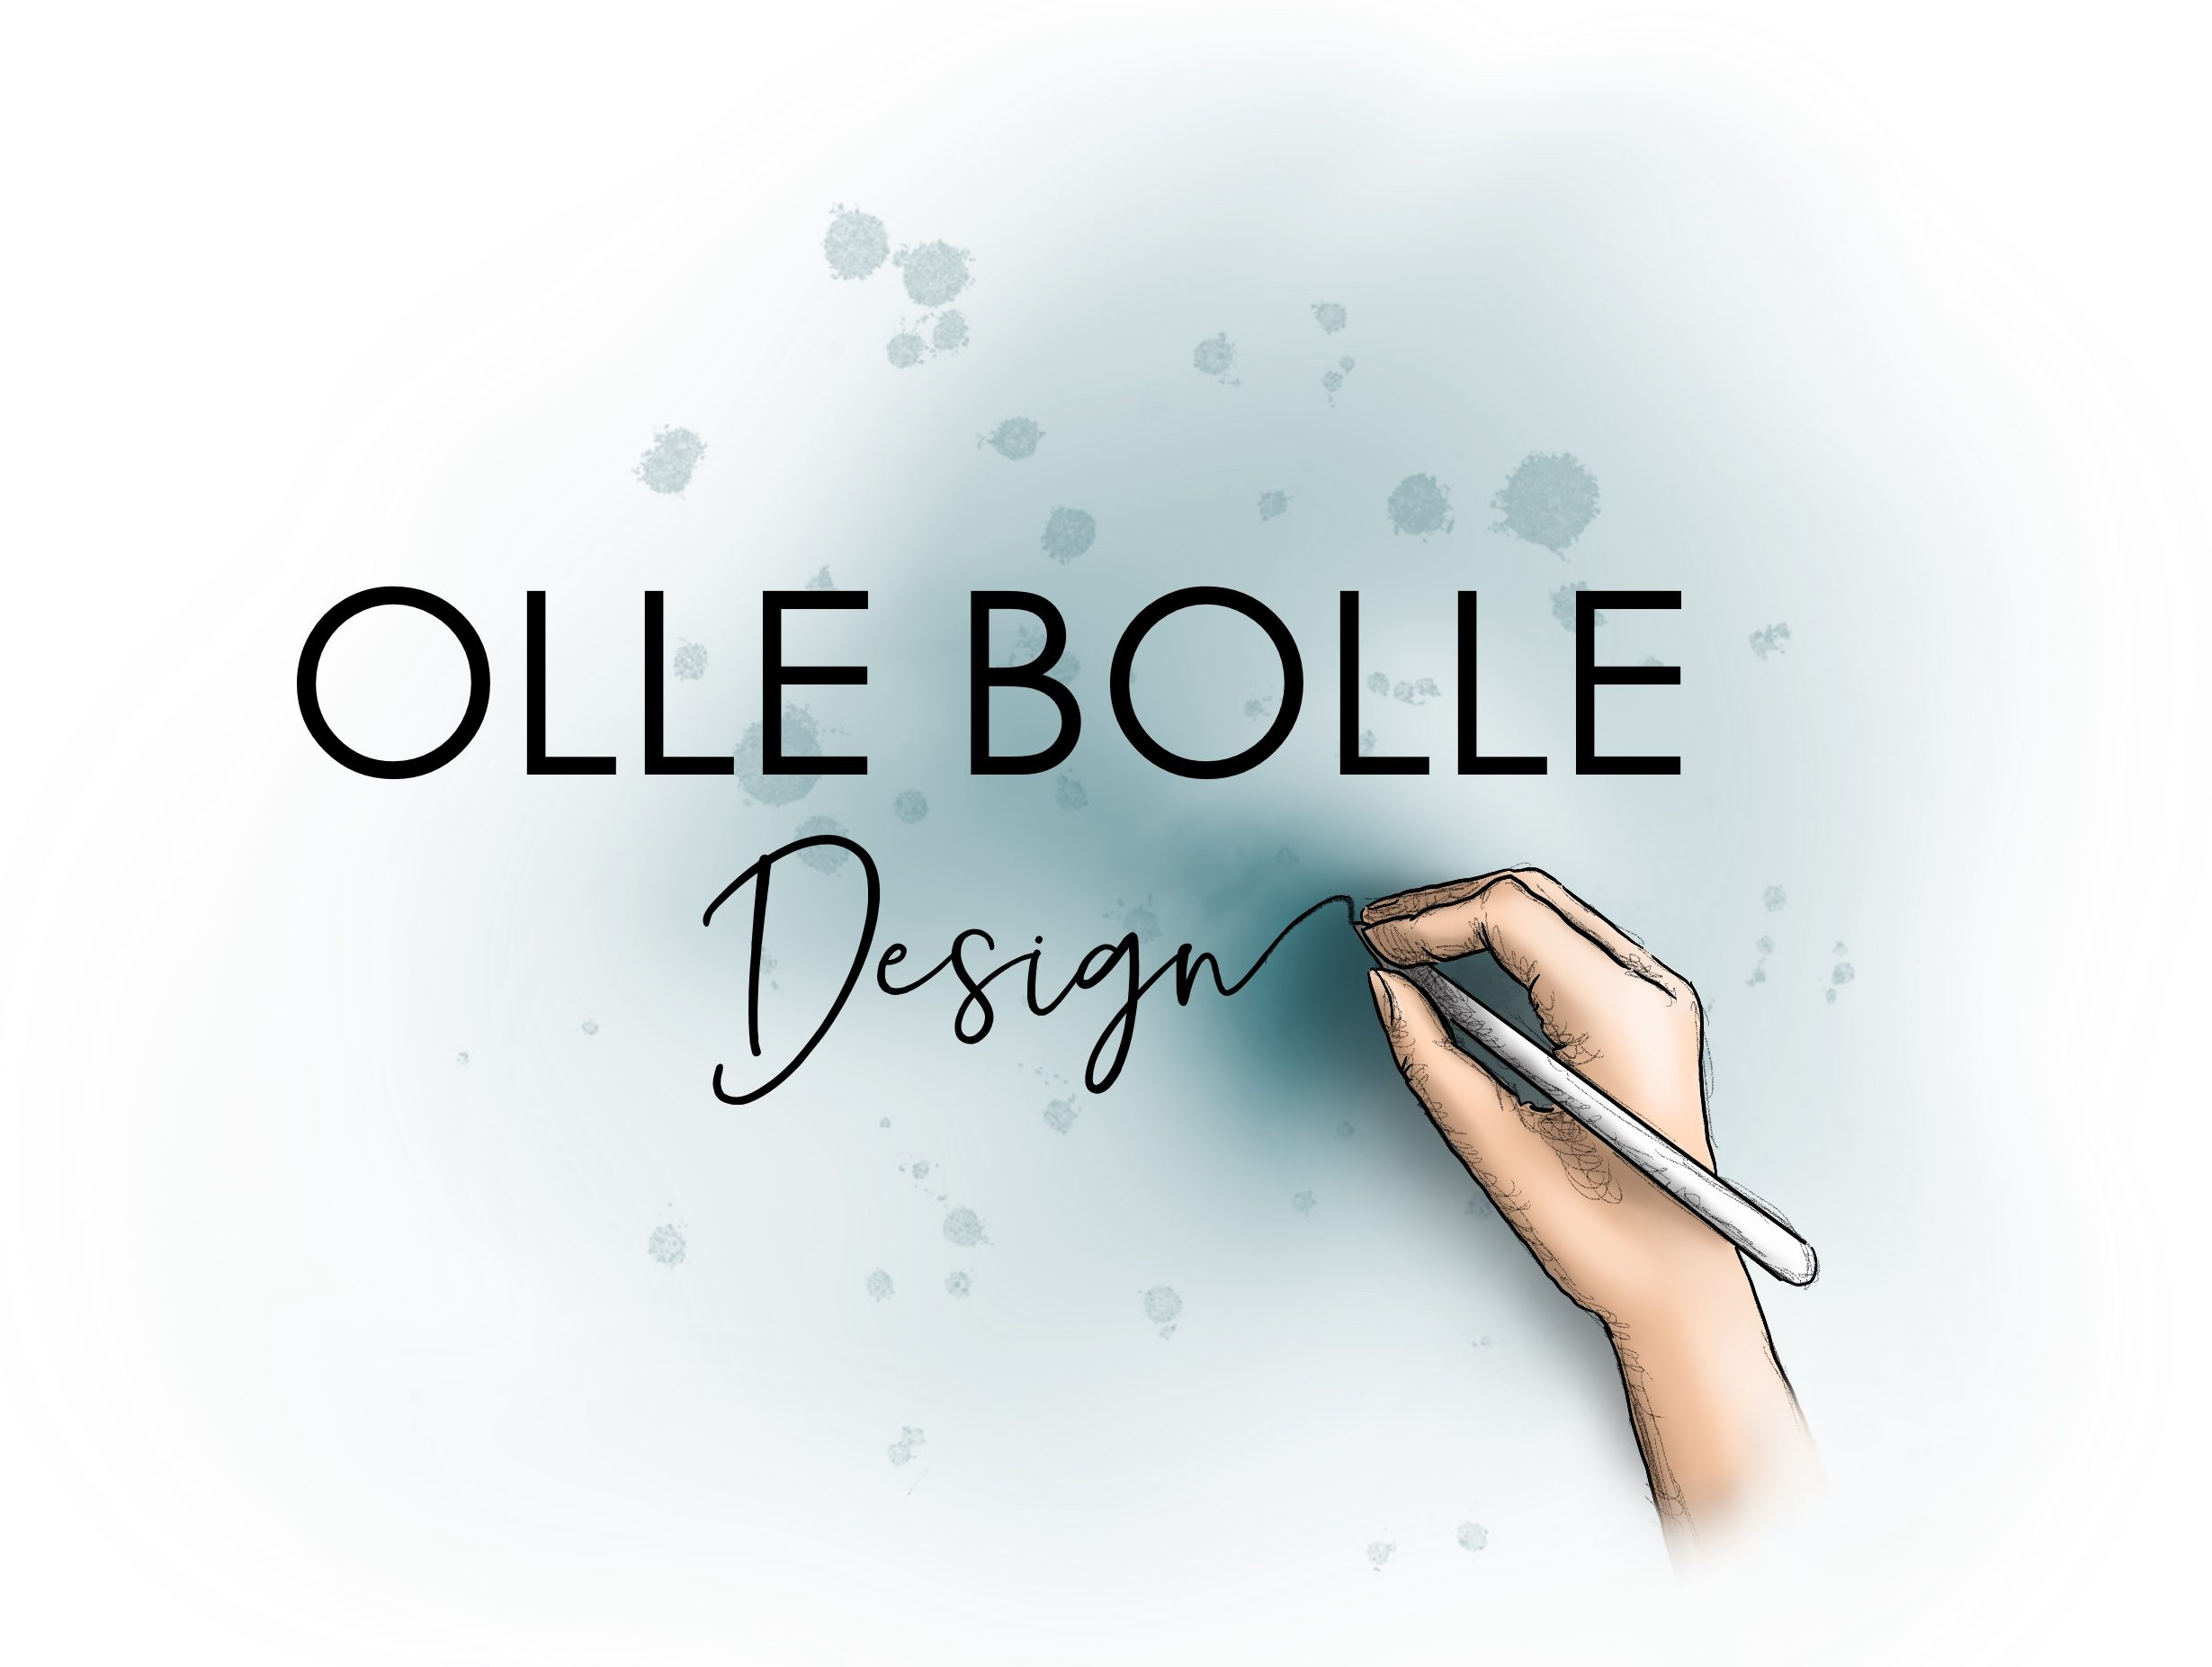 OLLE BOLLE DESIGN